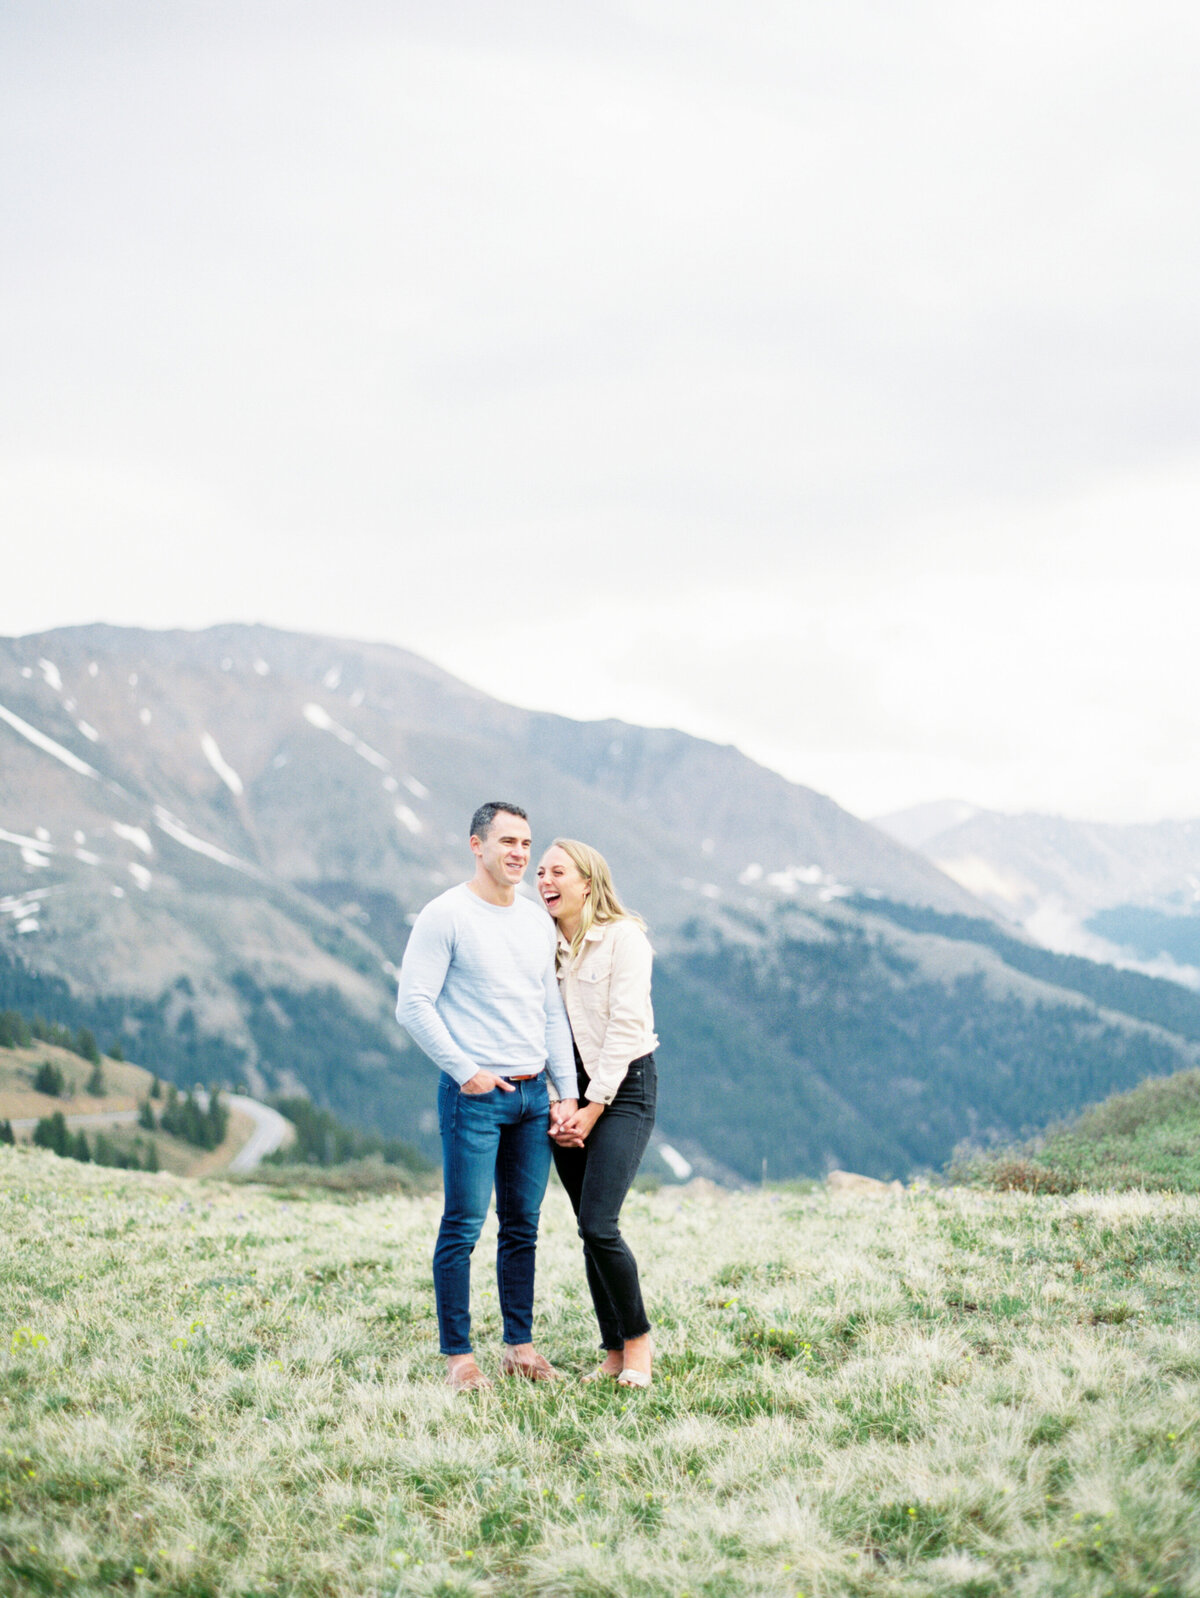 Melissa Brielle Photography Colorado Fine Art Wedding Engagement Photographer Photograph Melissa Minkner Light Airy Luxury High End14